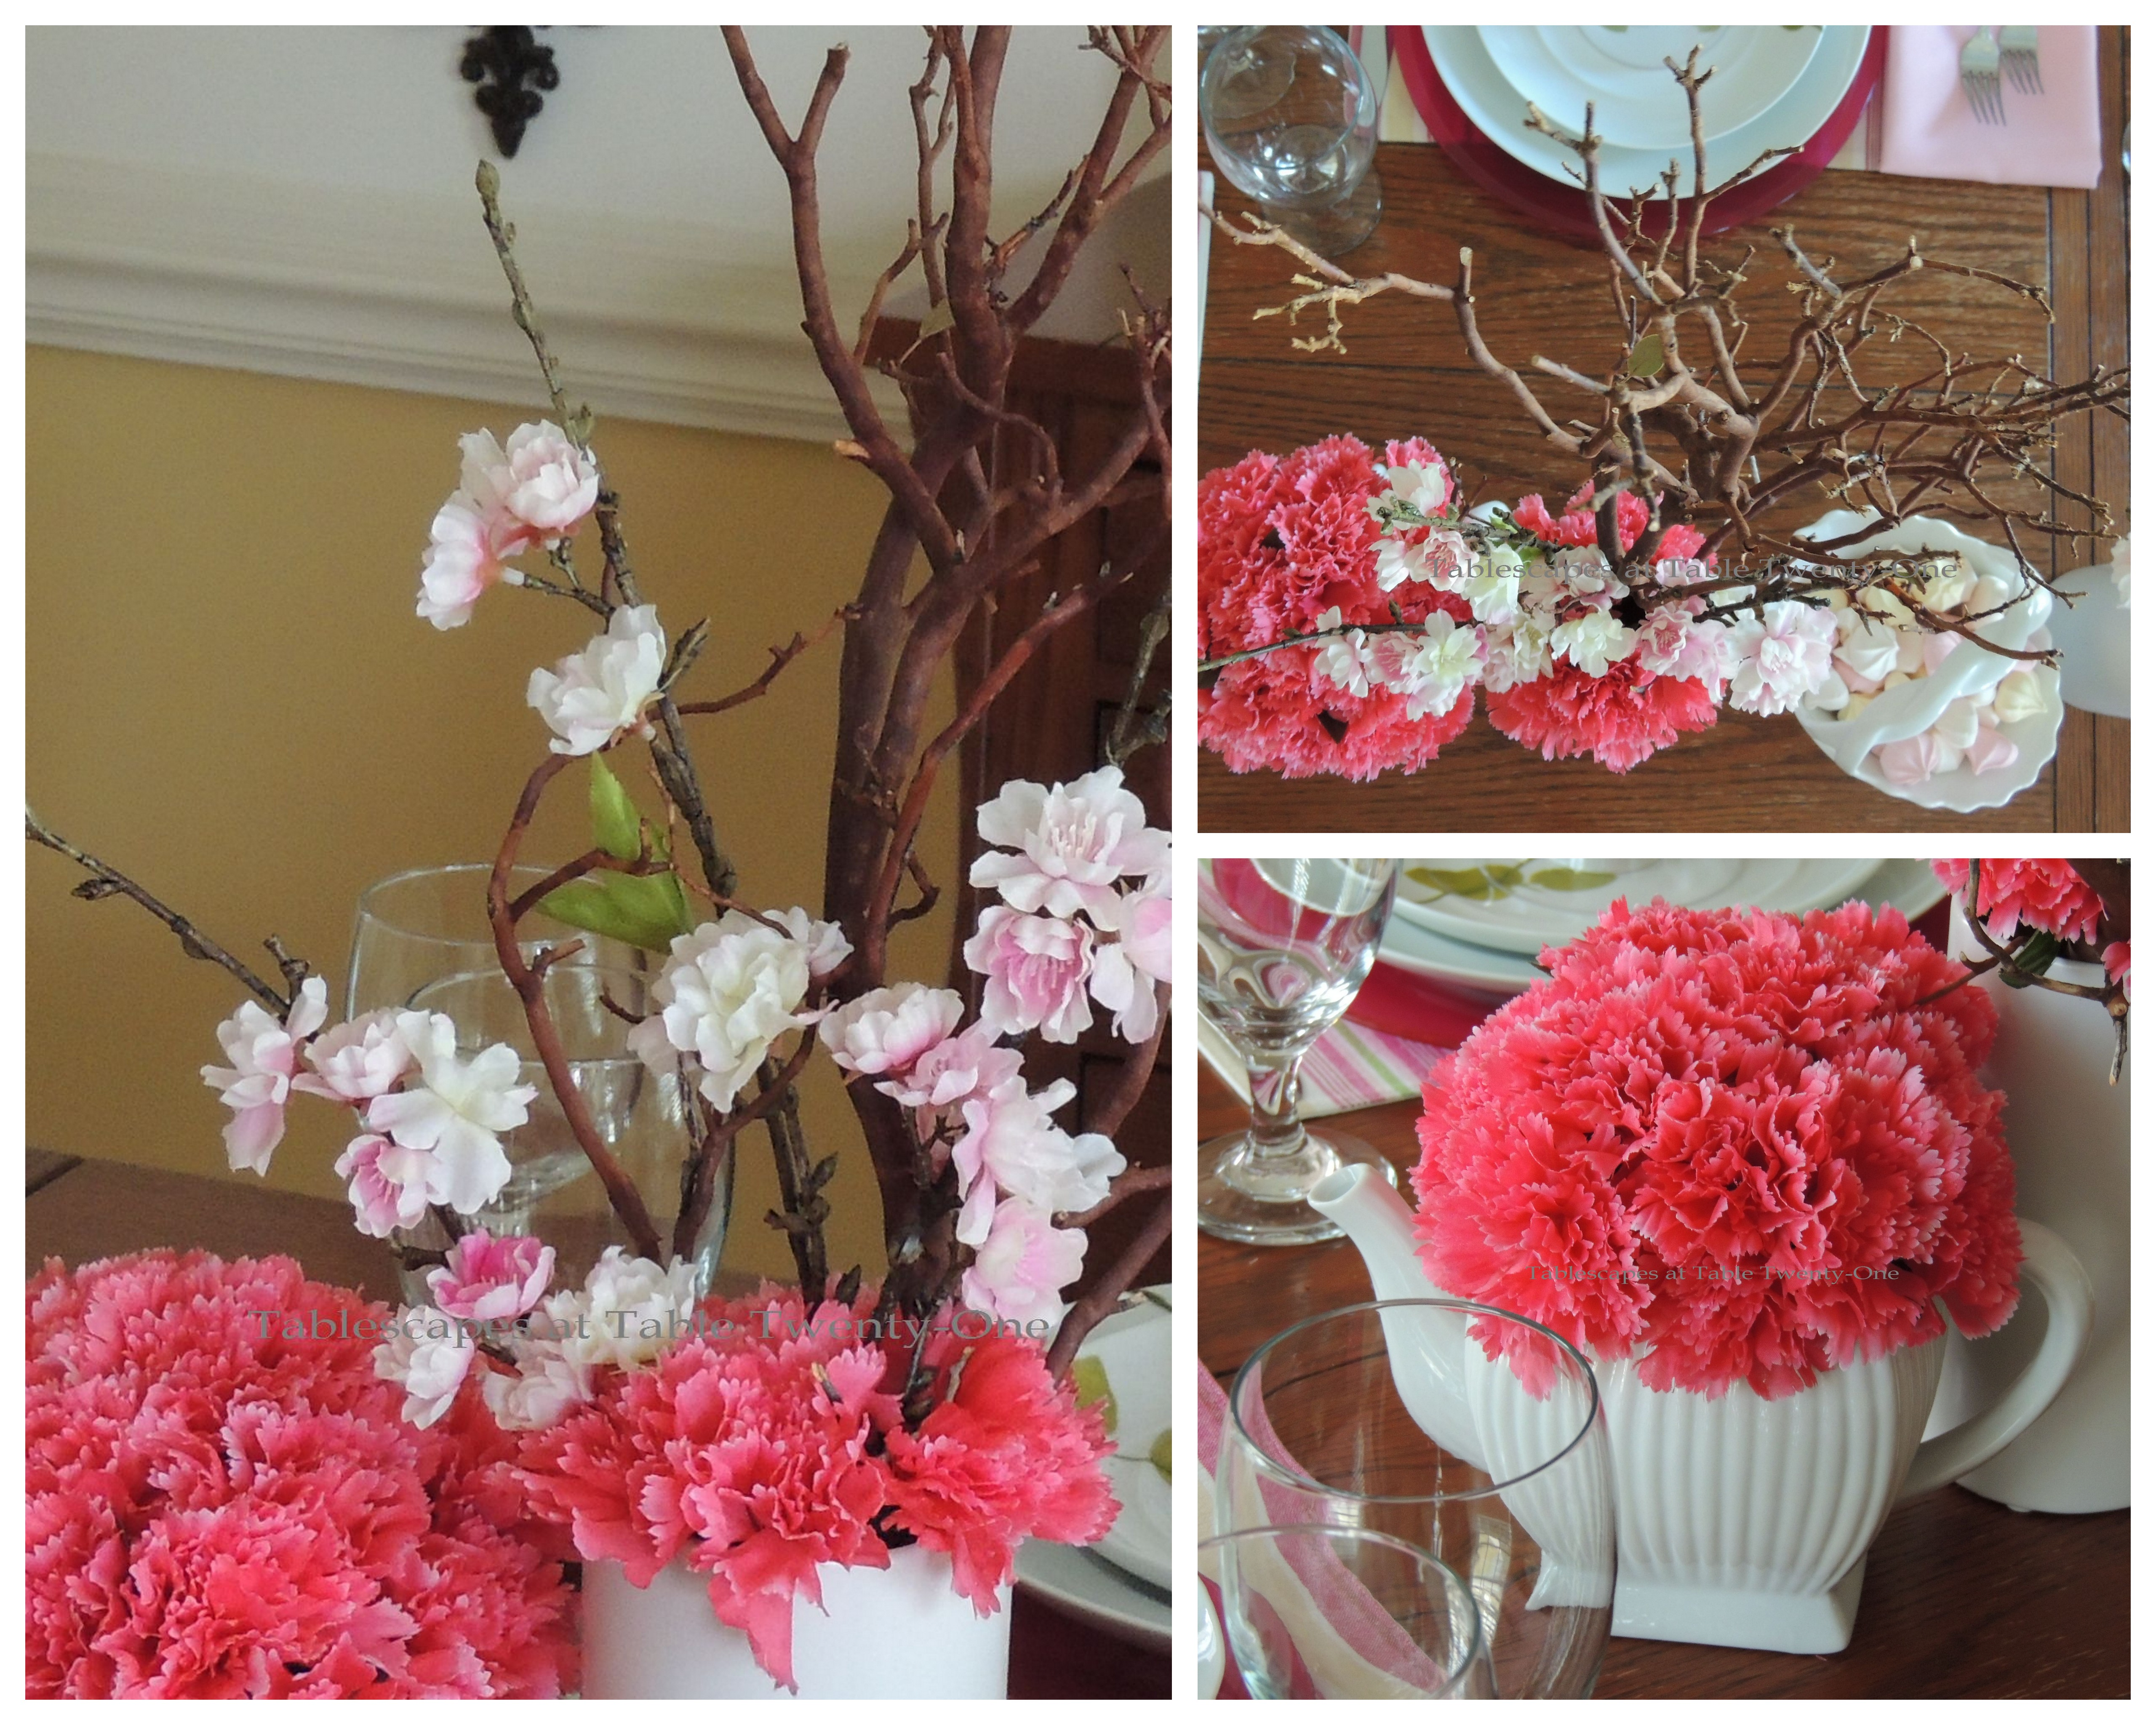 Tablescapes at Table Twenty-One, www.tabletwentyone.wordpress.com - All A'Bloom in Pink for Spring: deep pink carnations in white ceramic teapots